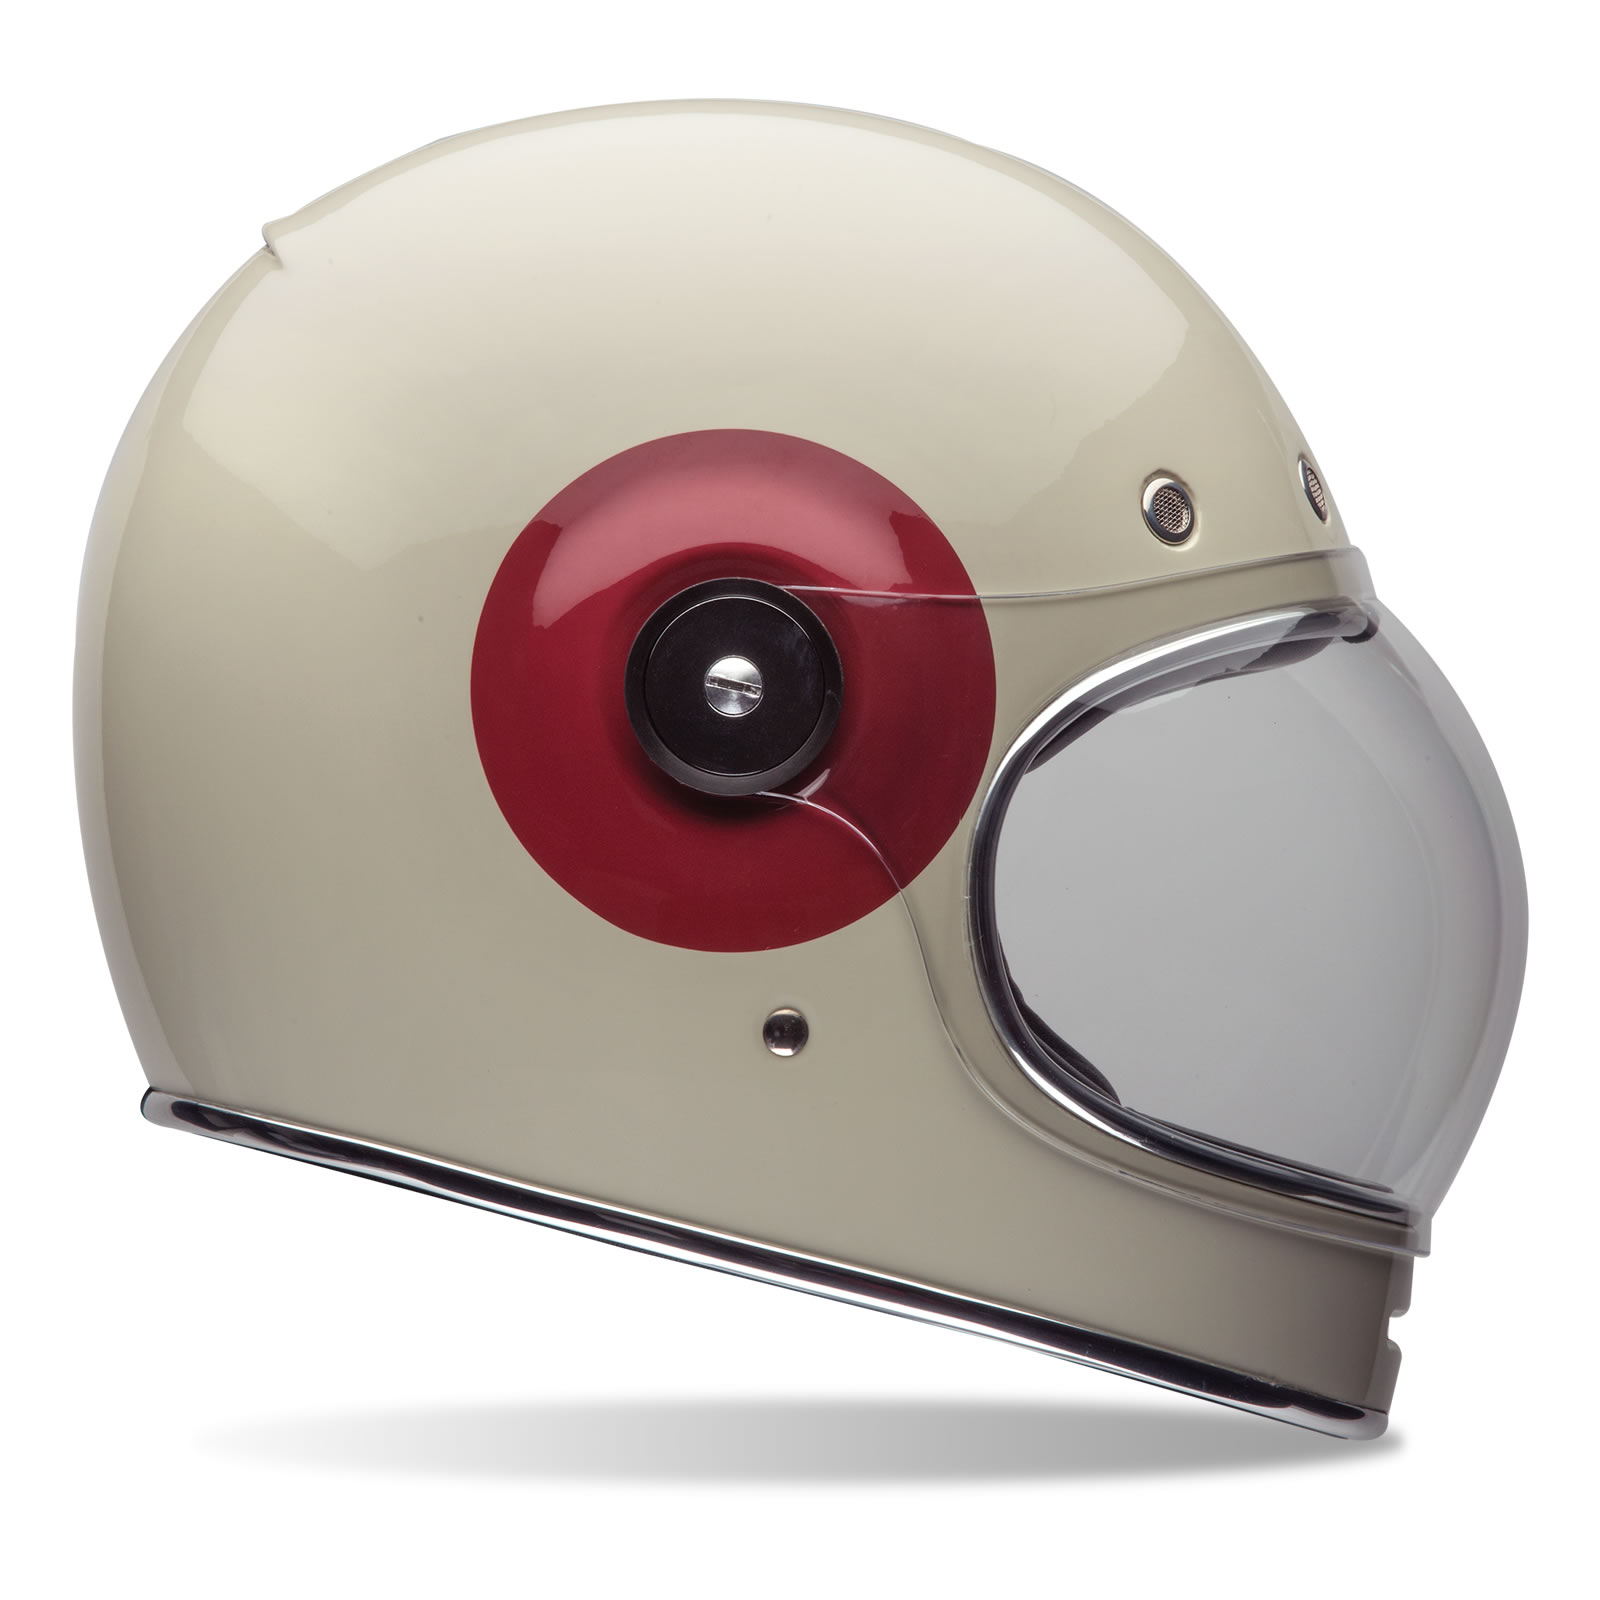 Bell Motorcycle Helmet >> Bell Bullitt Tt Cream Red Motorcycle Helmet Retro Vintage Full Face